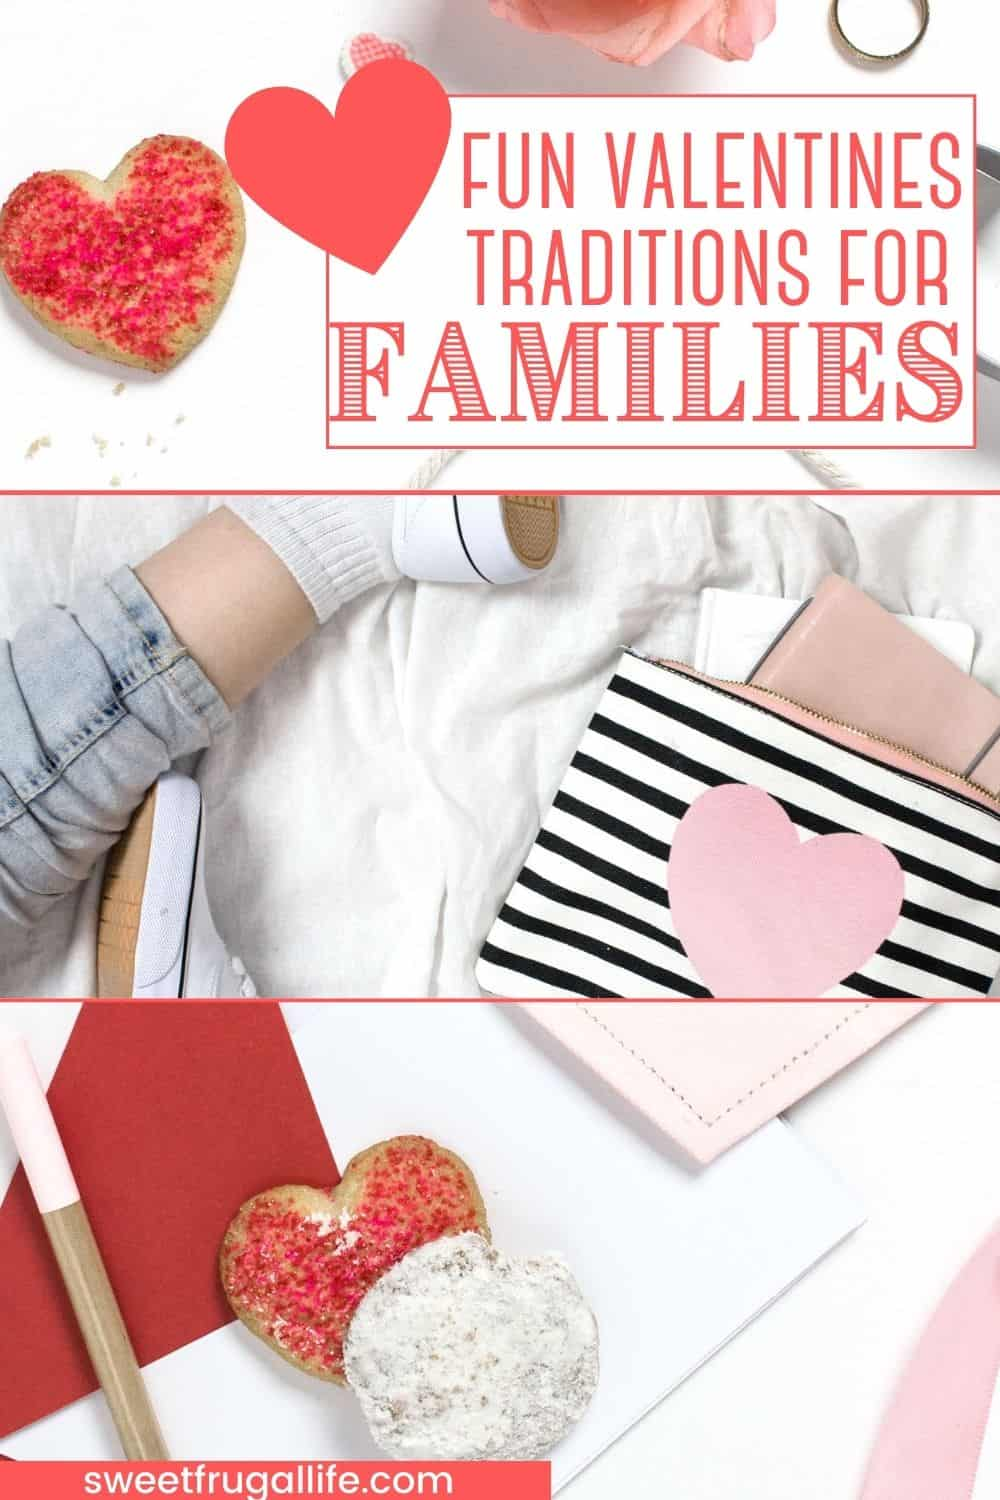 family valentine traditions - fun ways to celebrate valentine day as a family